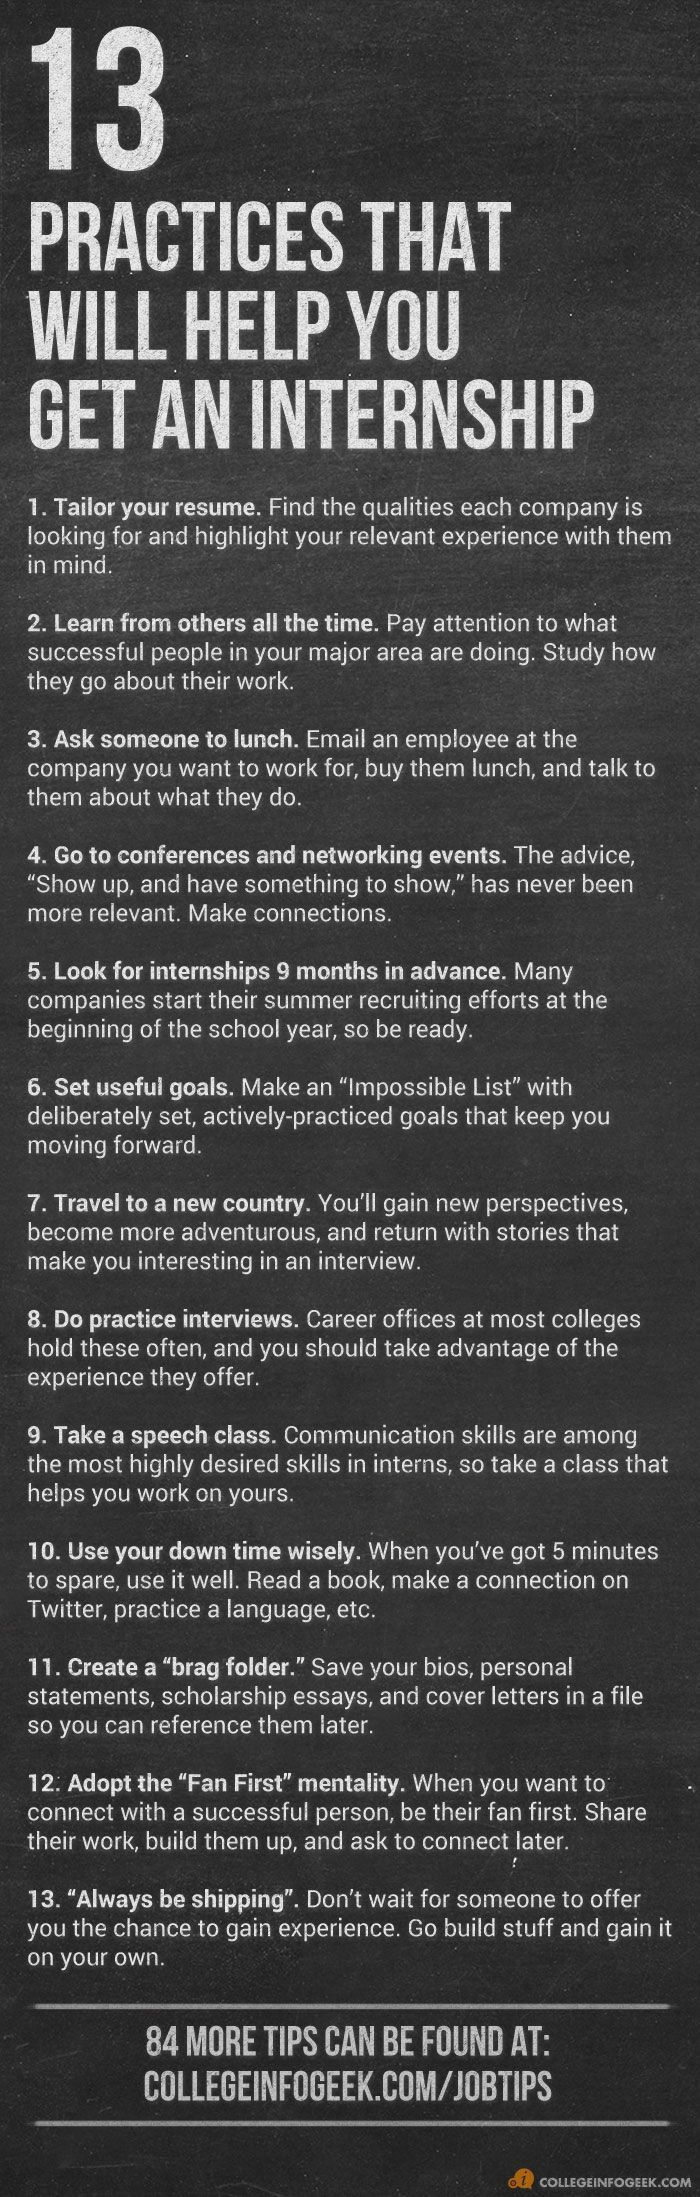 13 tips that will help with your college internship search internships are a great way to build career skills and to get started with the job hunting